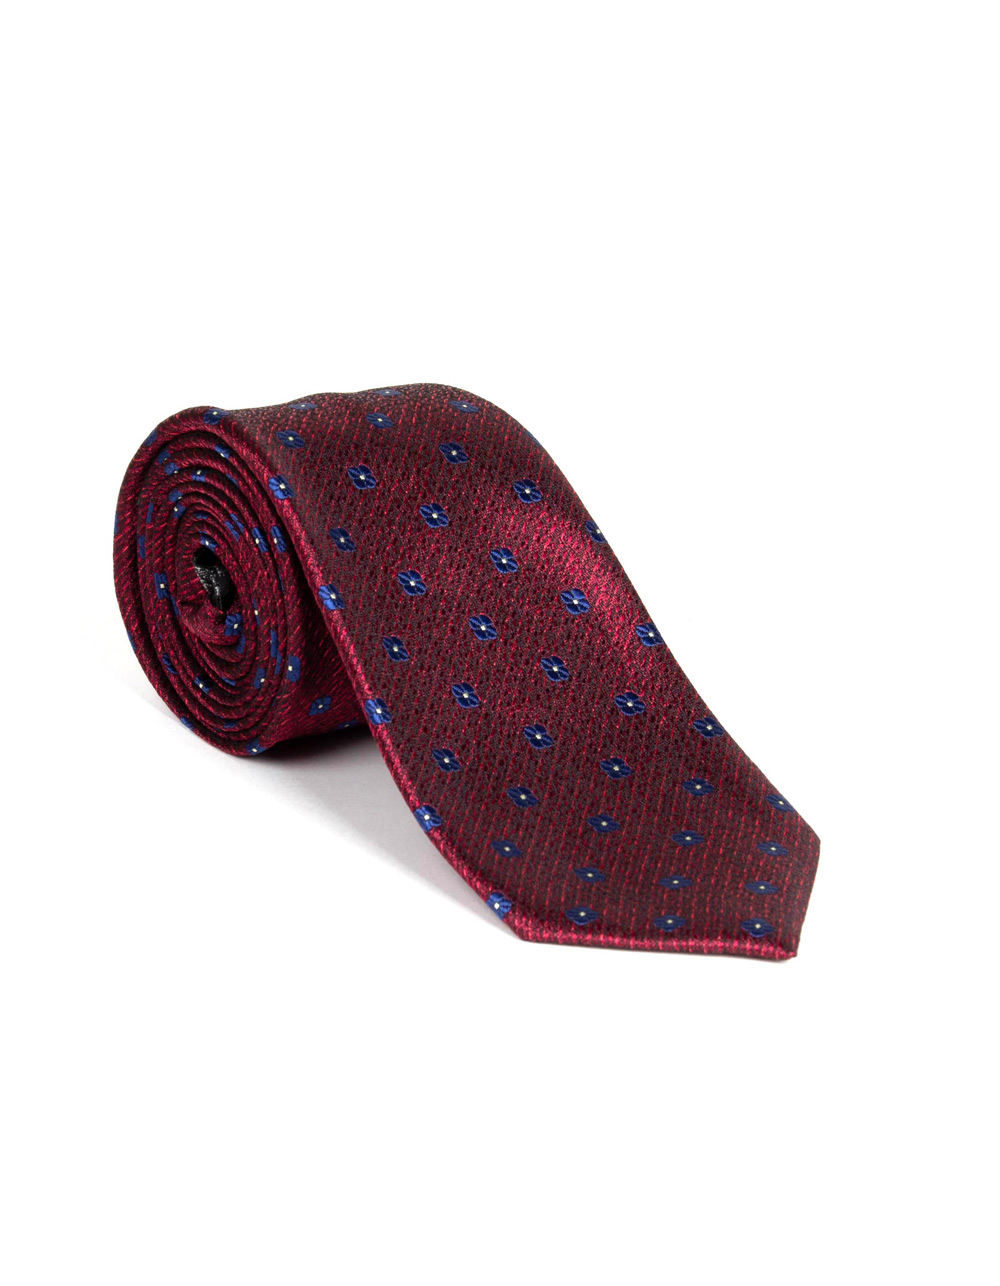 Red tie with red floral print